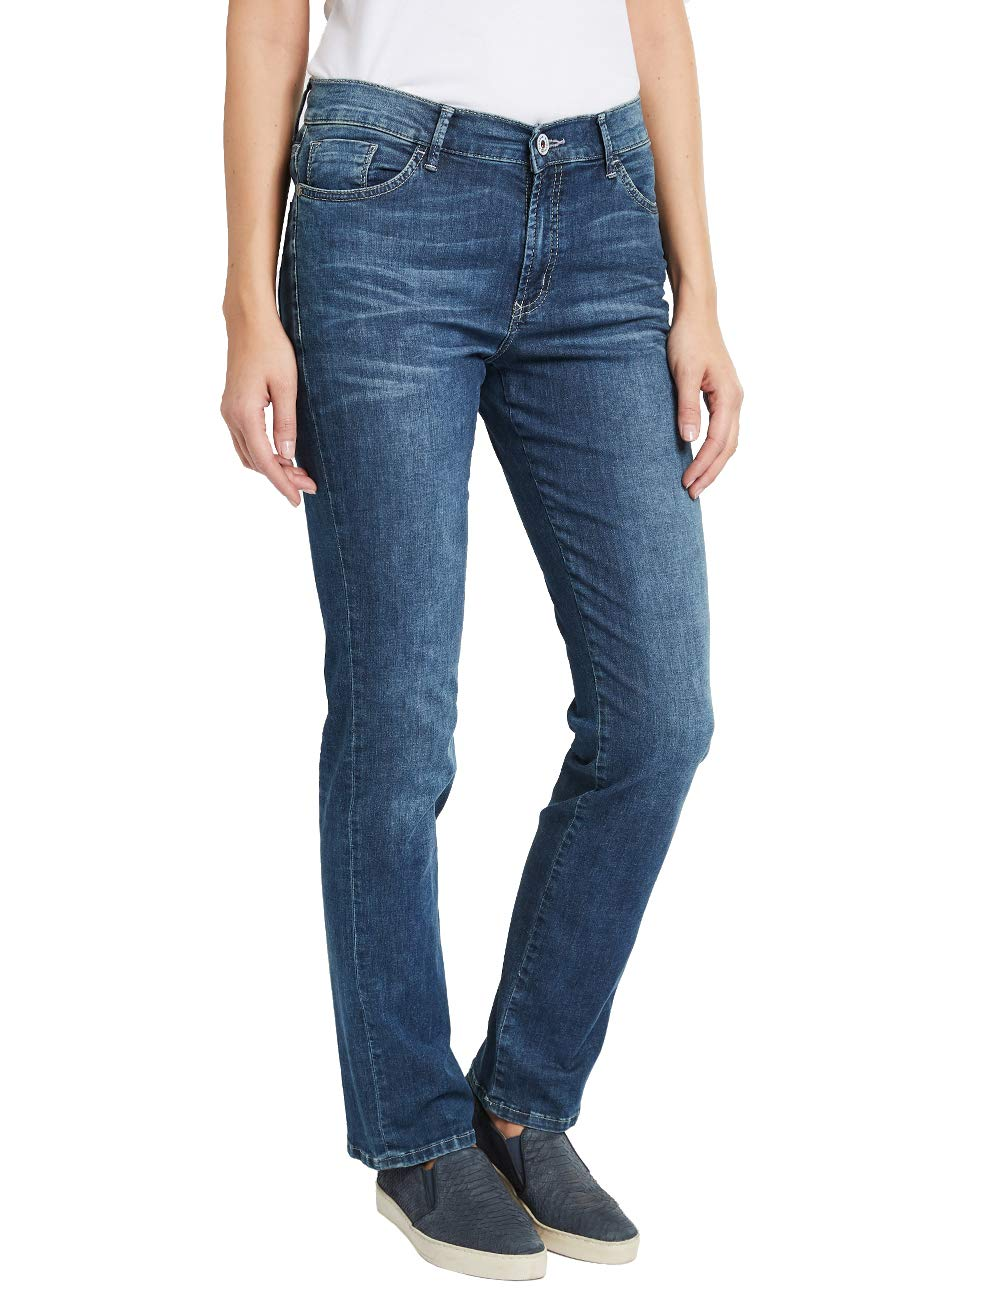 Bleublue l32 Pioneer KateJeanFemme Buffies Used With Stone 363W27 SqUzpMVG